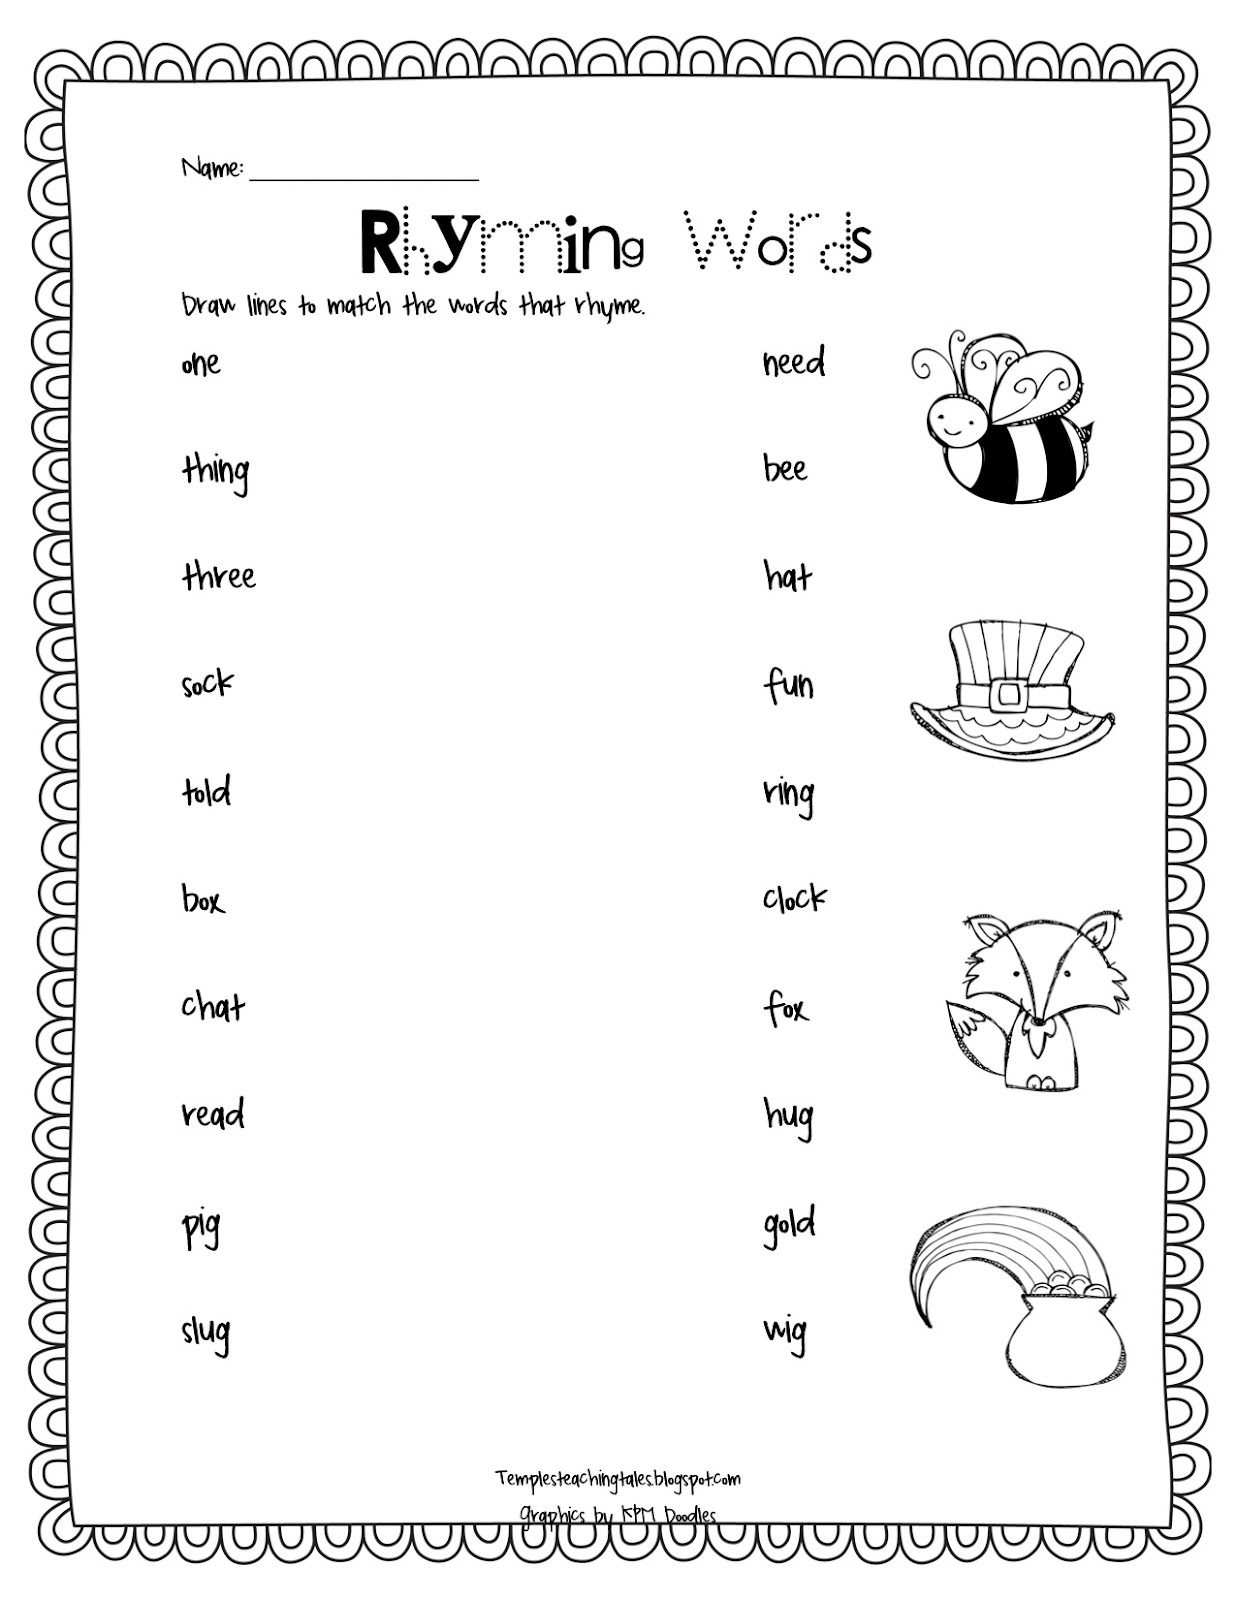 Worksheet 3rd Grade Math Homework math homework for 3rd graders ipgproje com graders